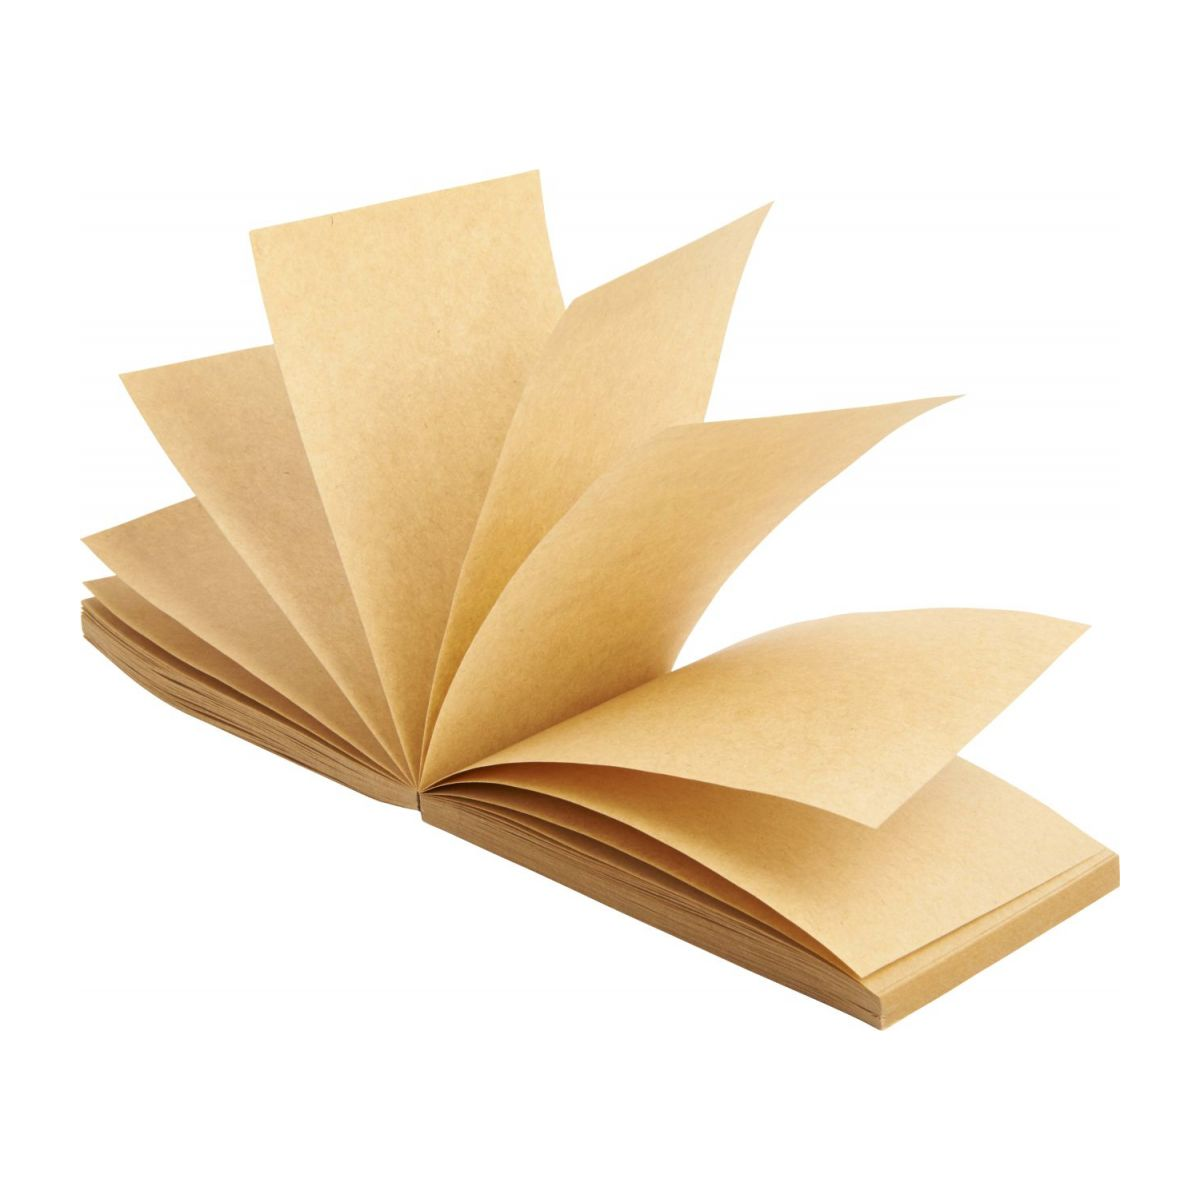 Stationery box (10 pieces) n°18